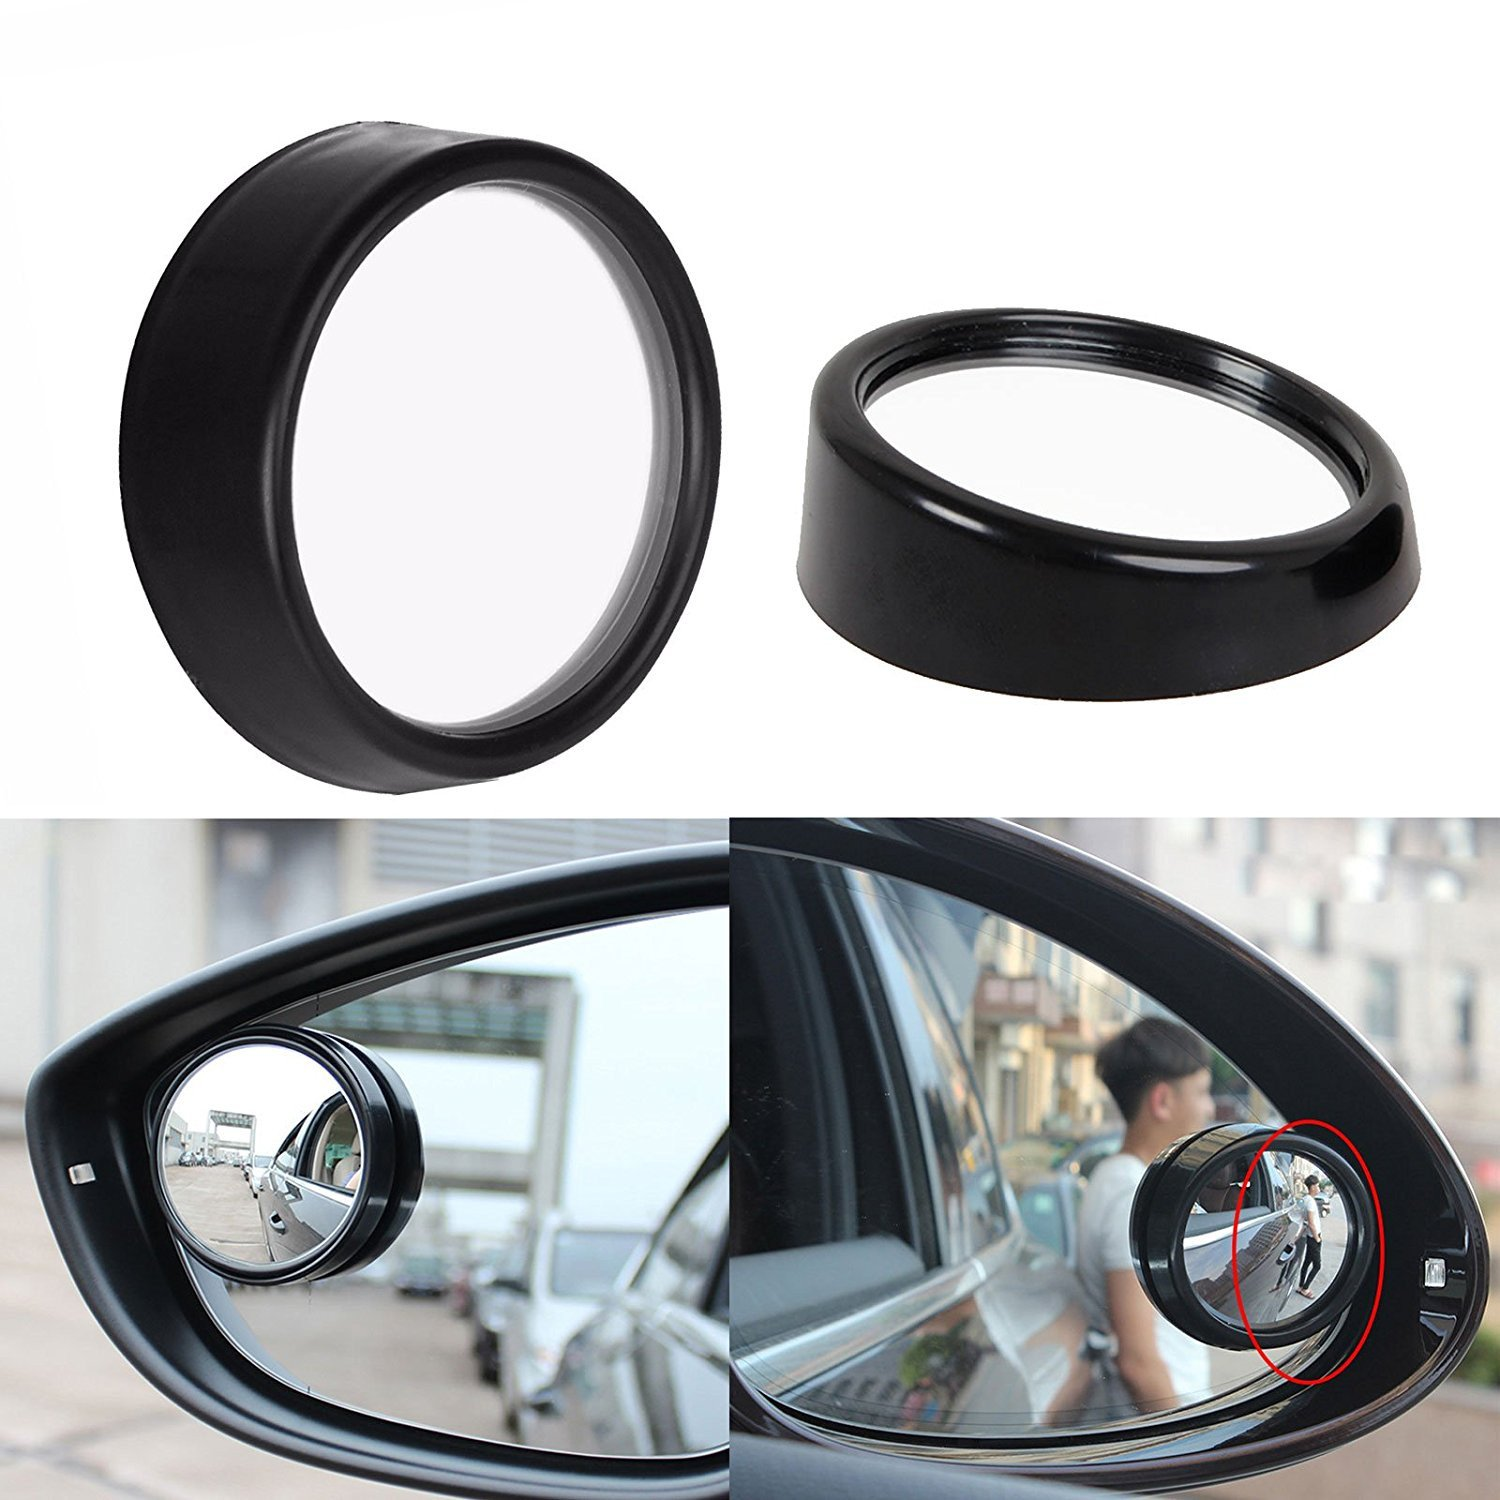 Xotic Tech 2 pcs Black Round Wide Angle Convex Rear View Stick On Blind Spot Mirror For Car Truck SUVs Motorcycle